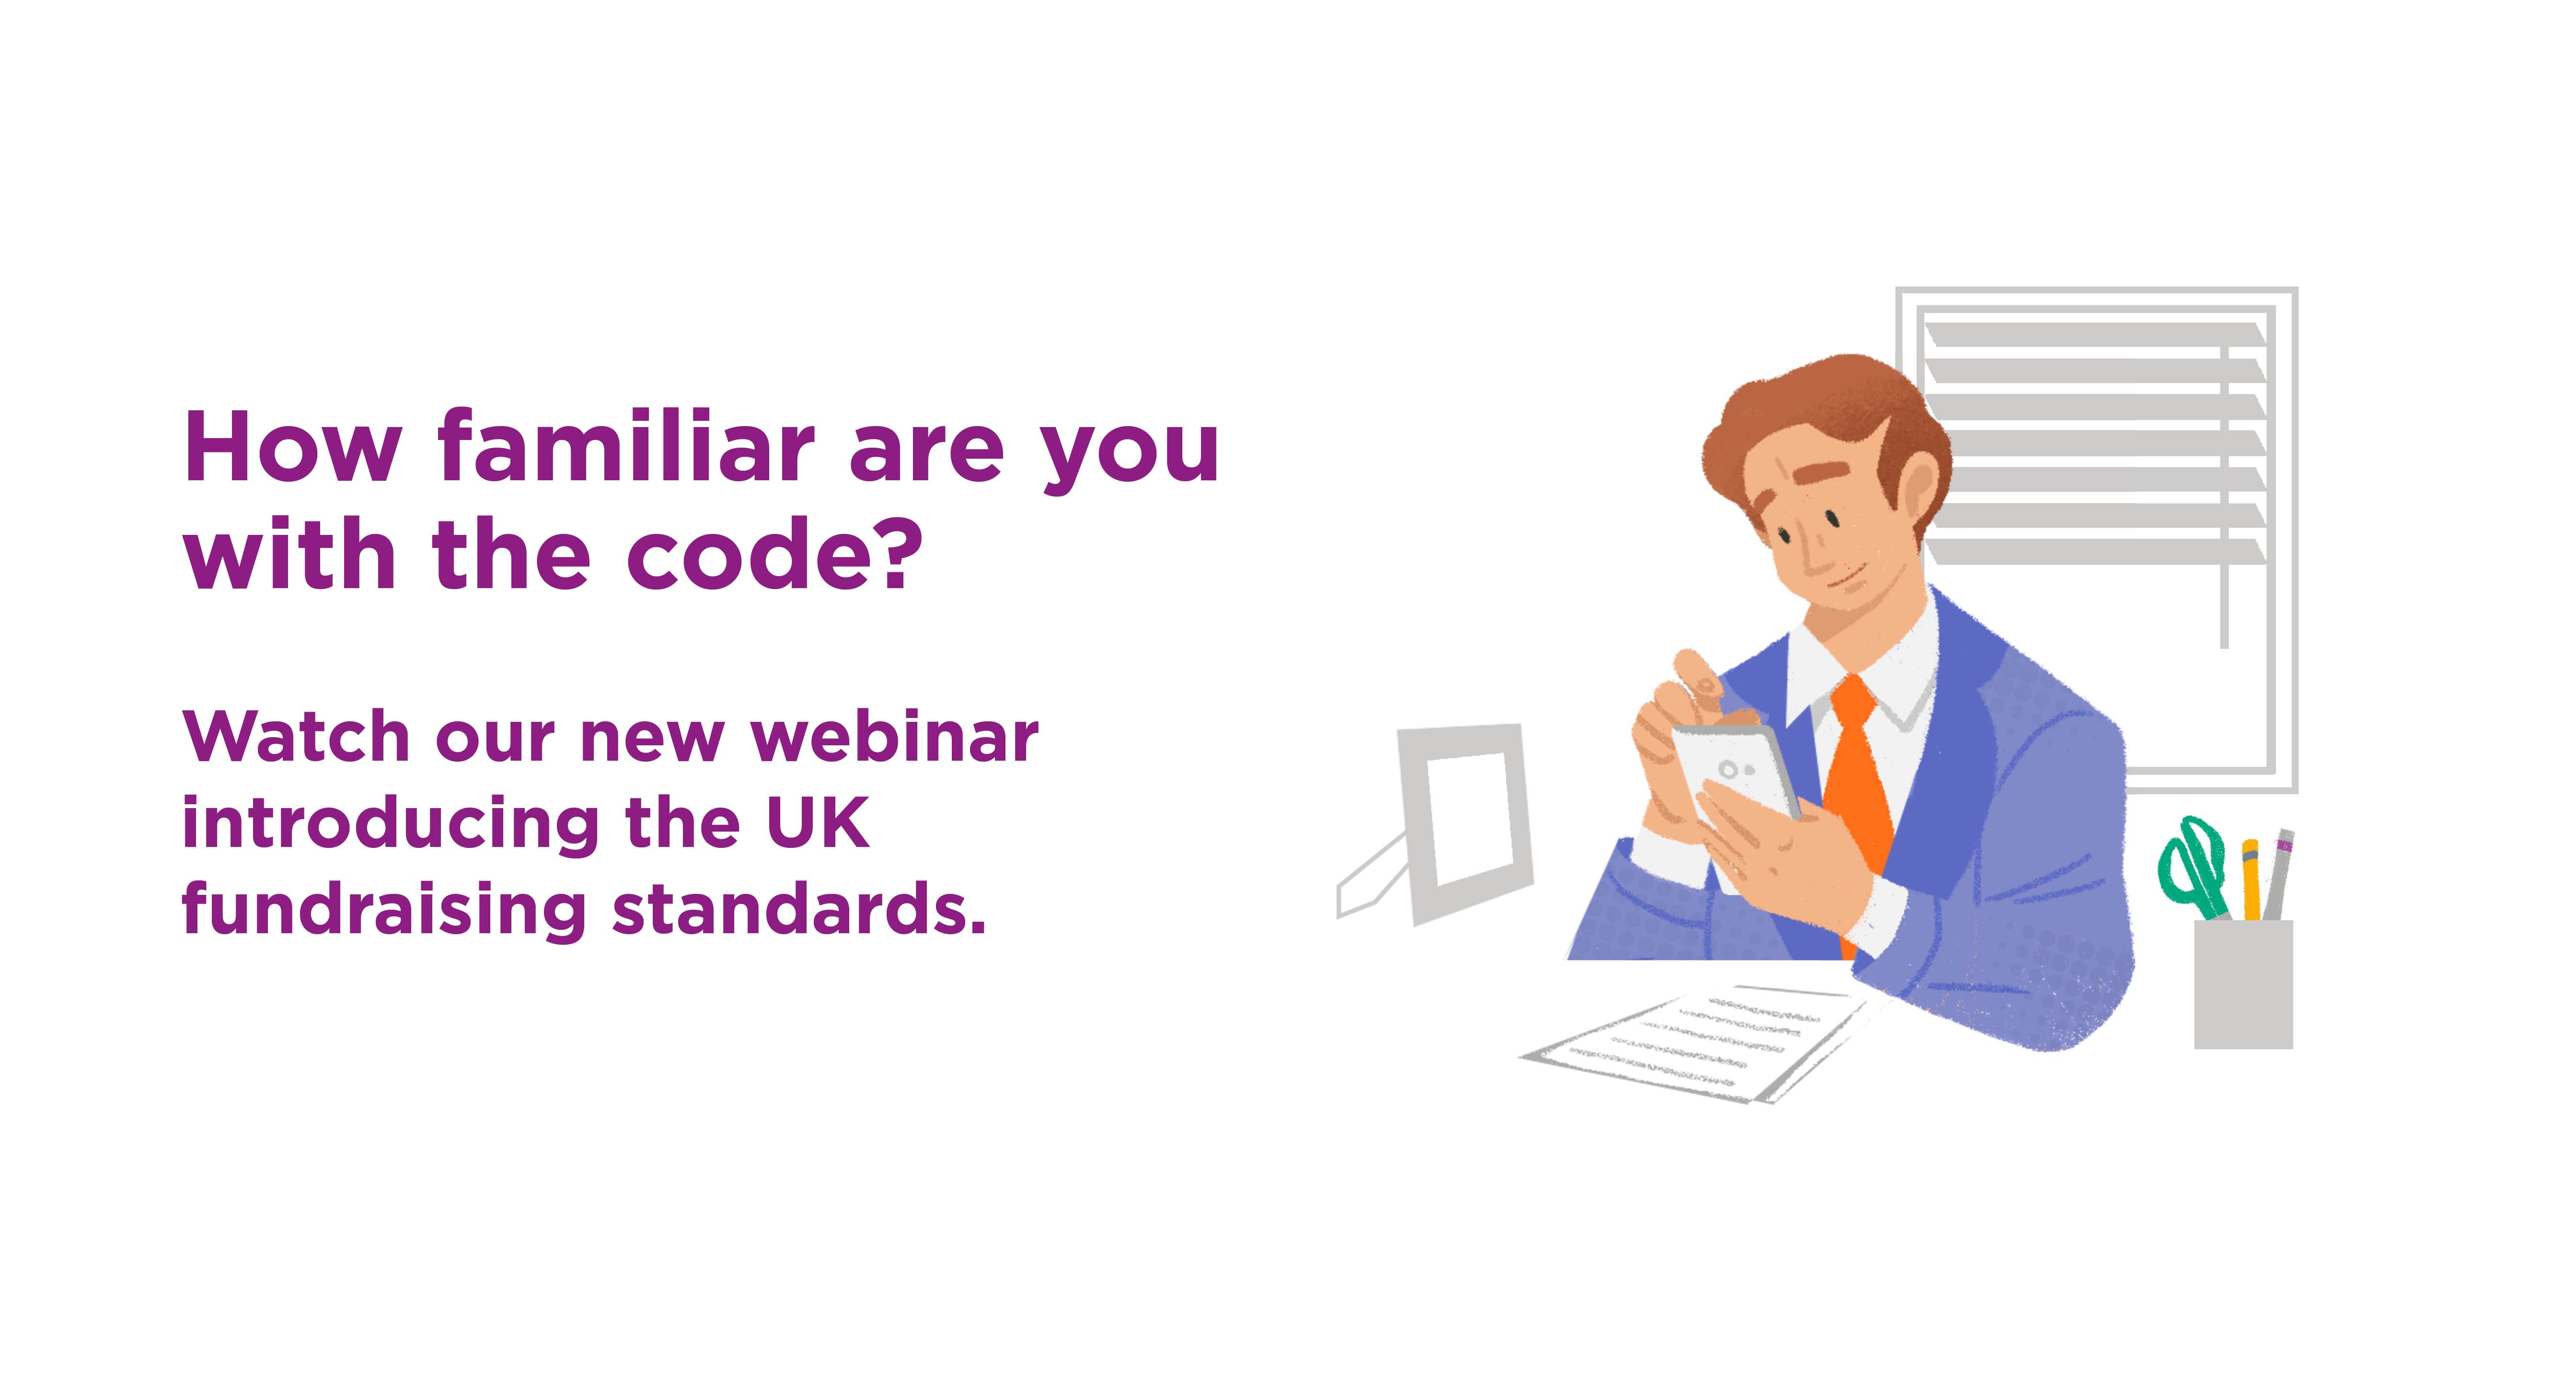 Watch our new webinar introducing the UK fundraising standards